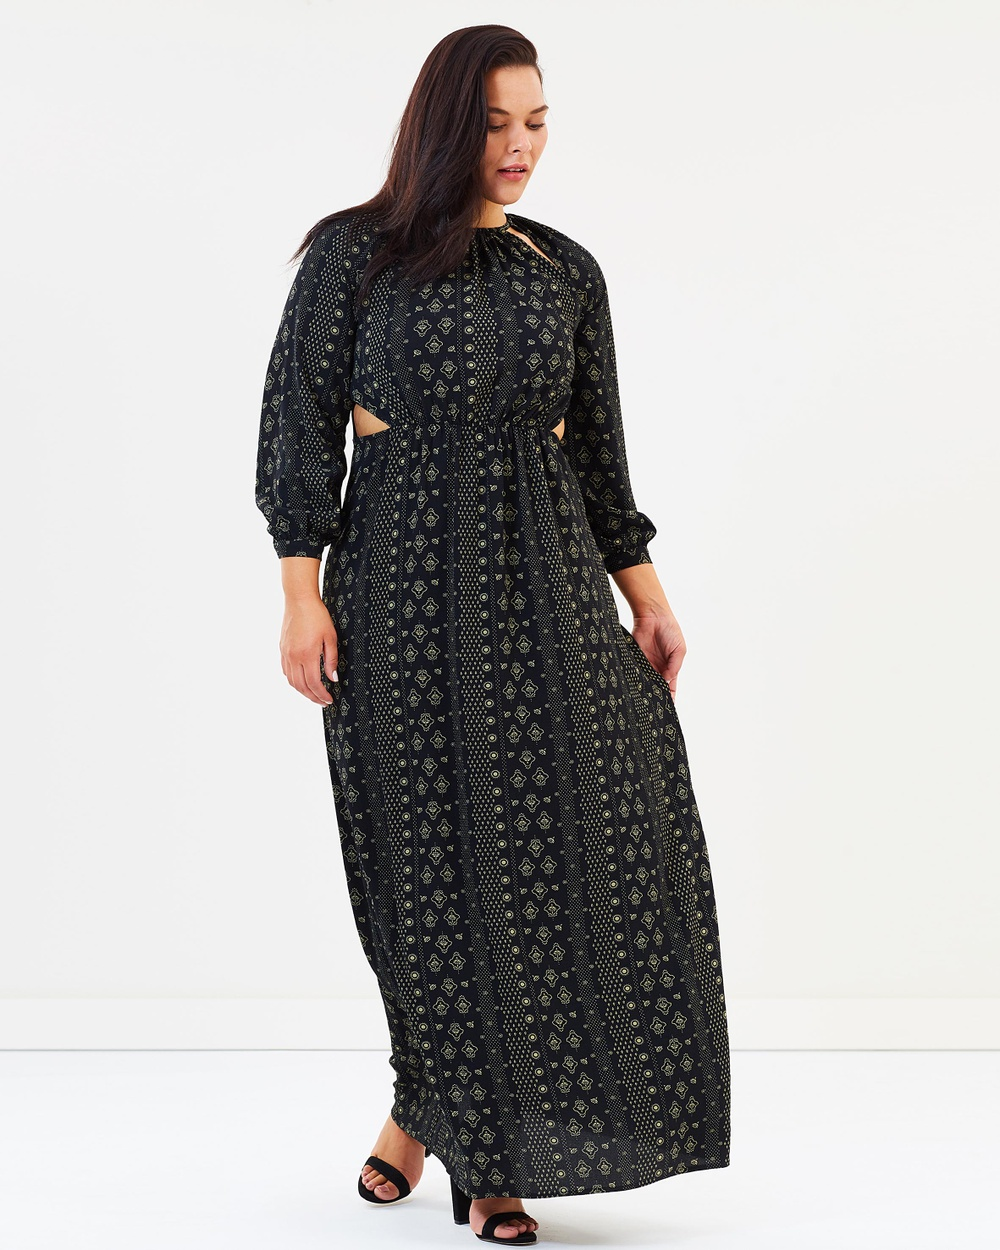 Atmos & Here Curvy ICONIC EXCLUSIVE Annabelle Maxi Dress Printed Dresses Dark Tile ICONIC EXCLUSIVE Annabelle Maxi Dress